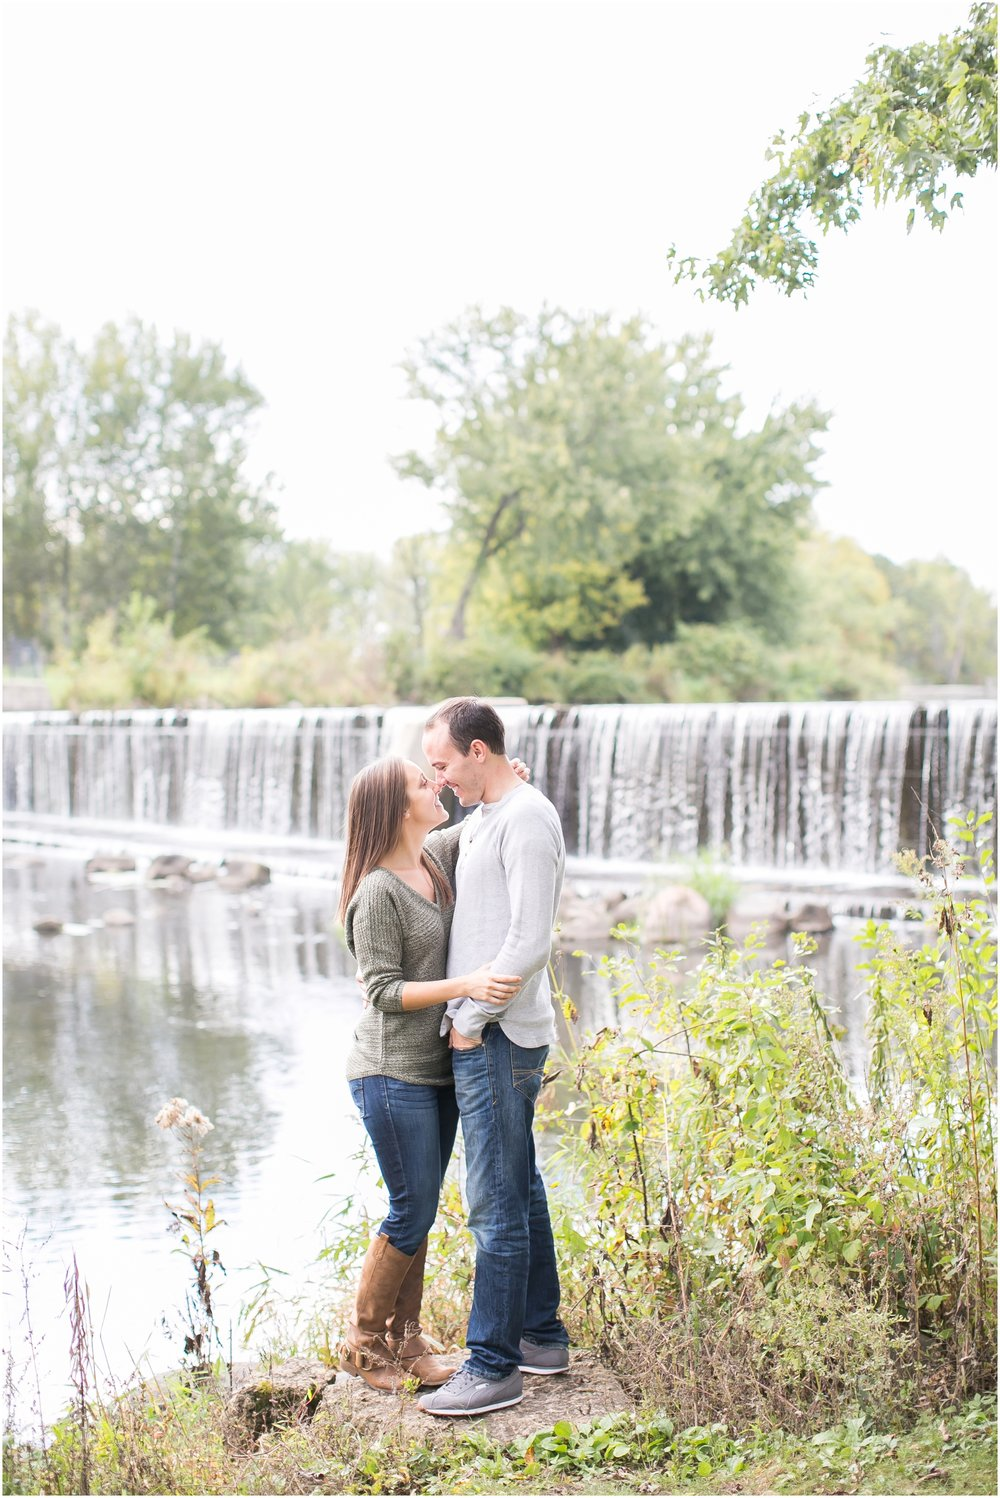 Beckman_Mill_Engagement_Session_Wisconsin_Wedding_Photographer_1594.jpg